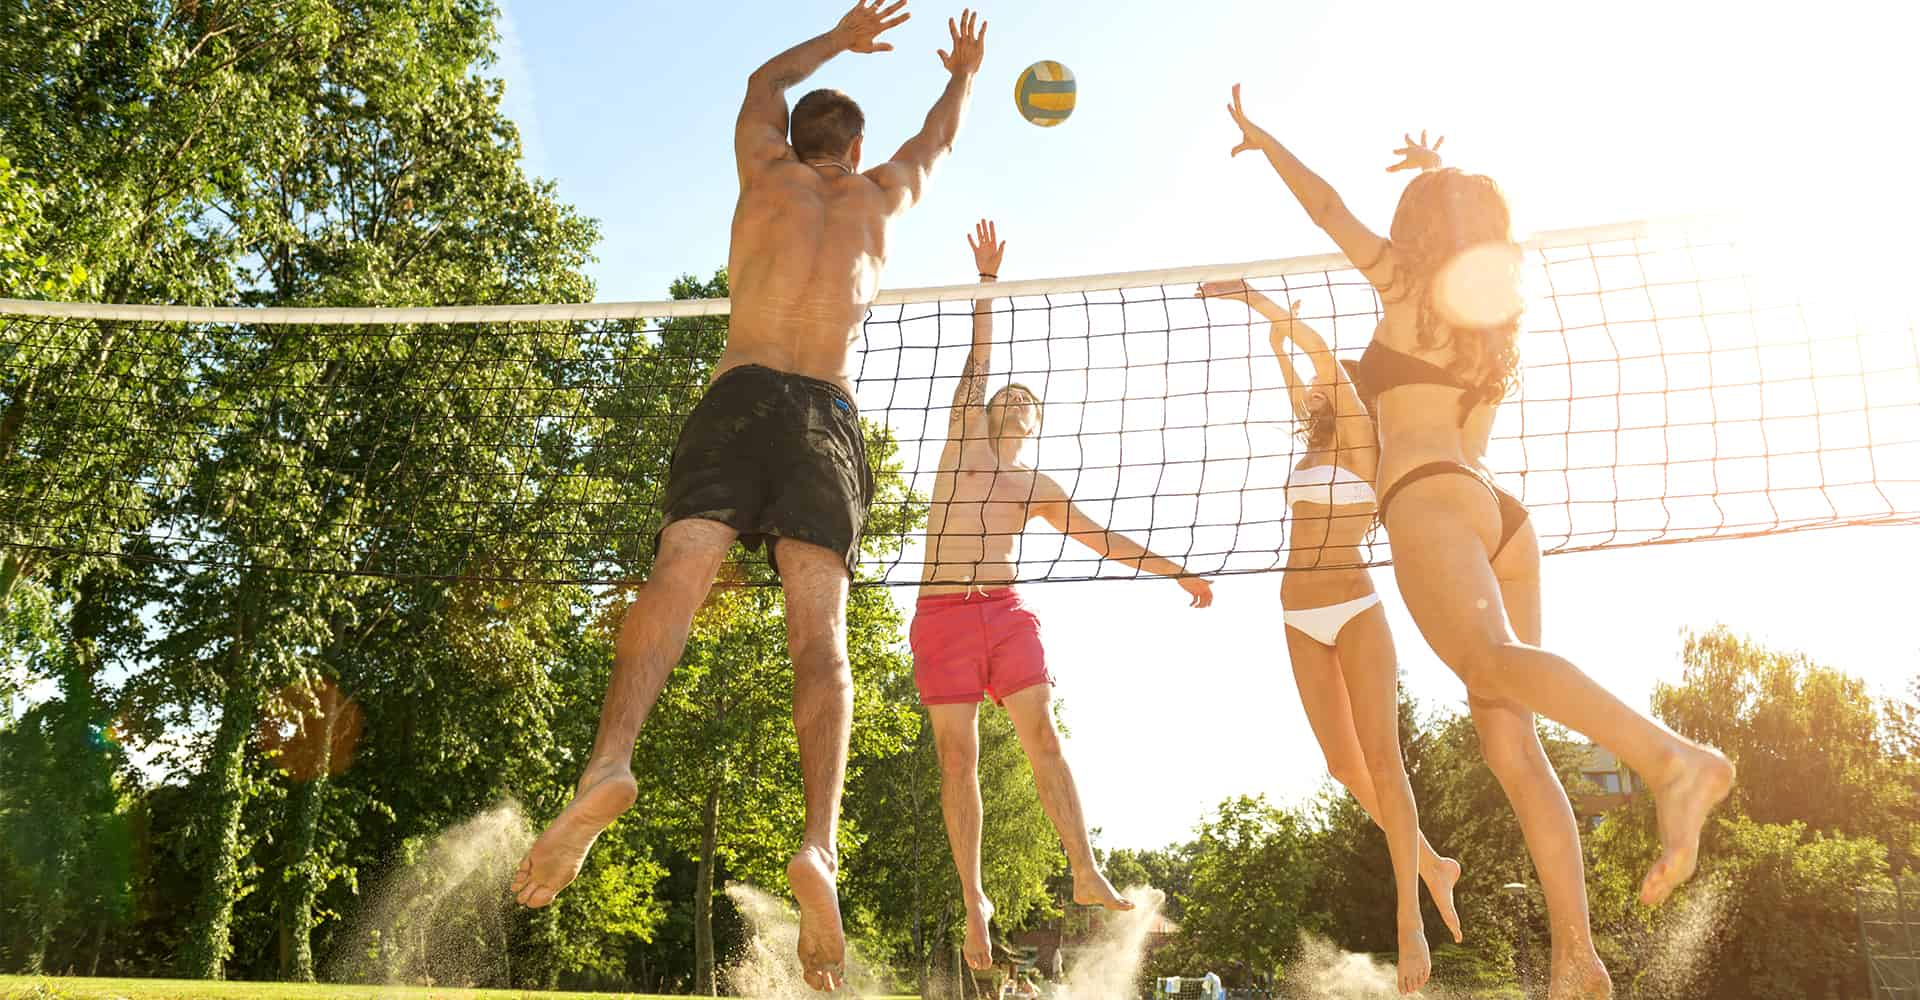 4 Best Portable Outdoor Volleyball Nets Oct 2020 Review